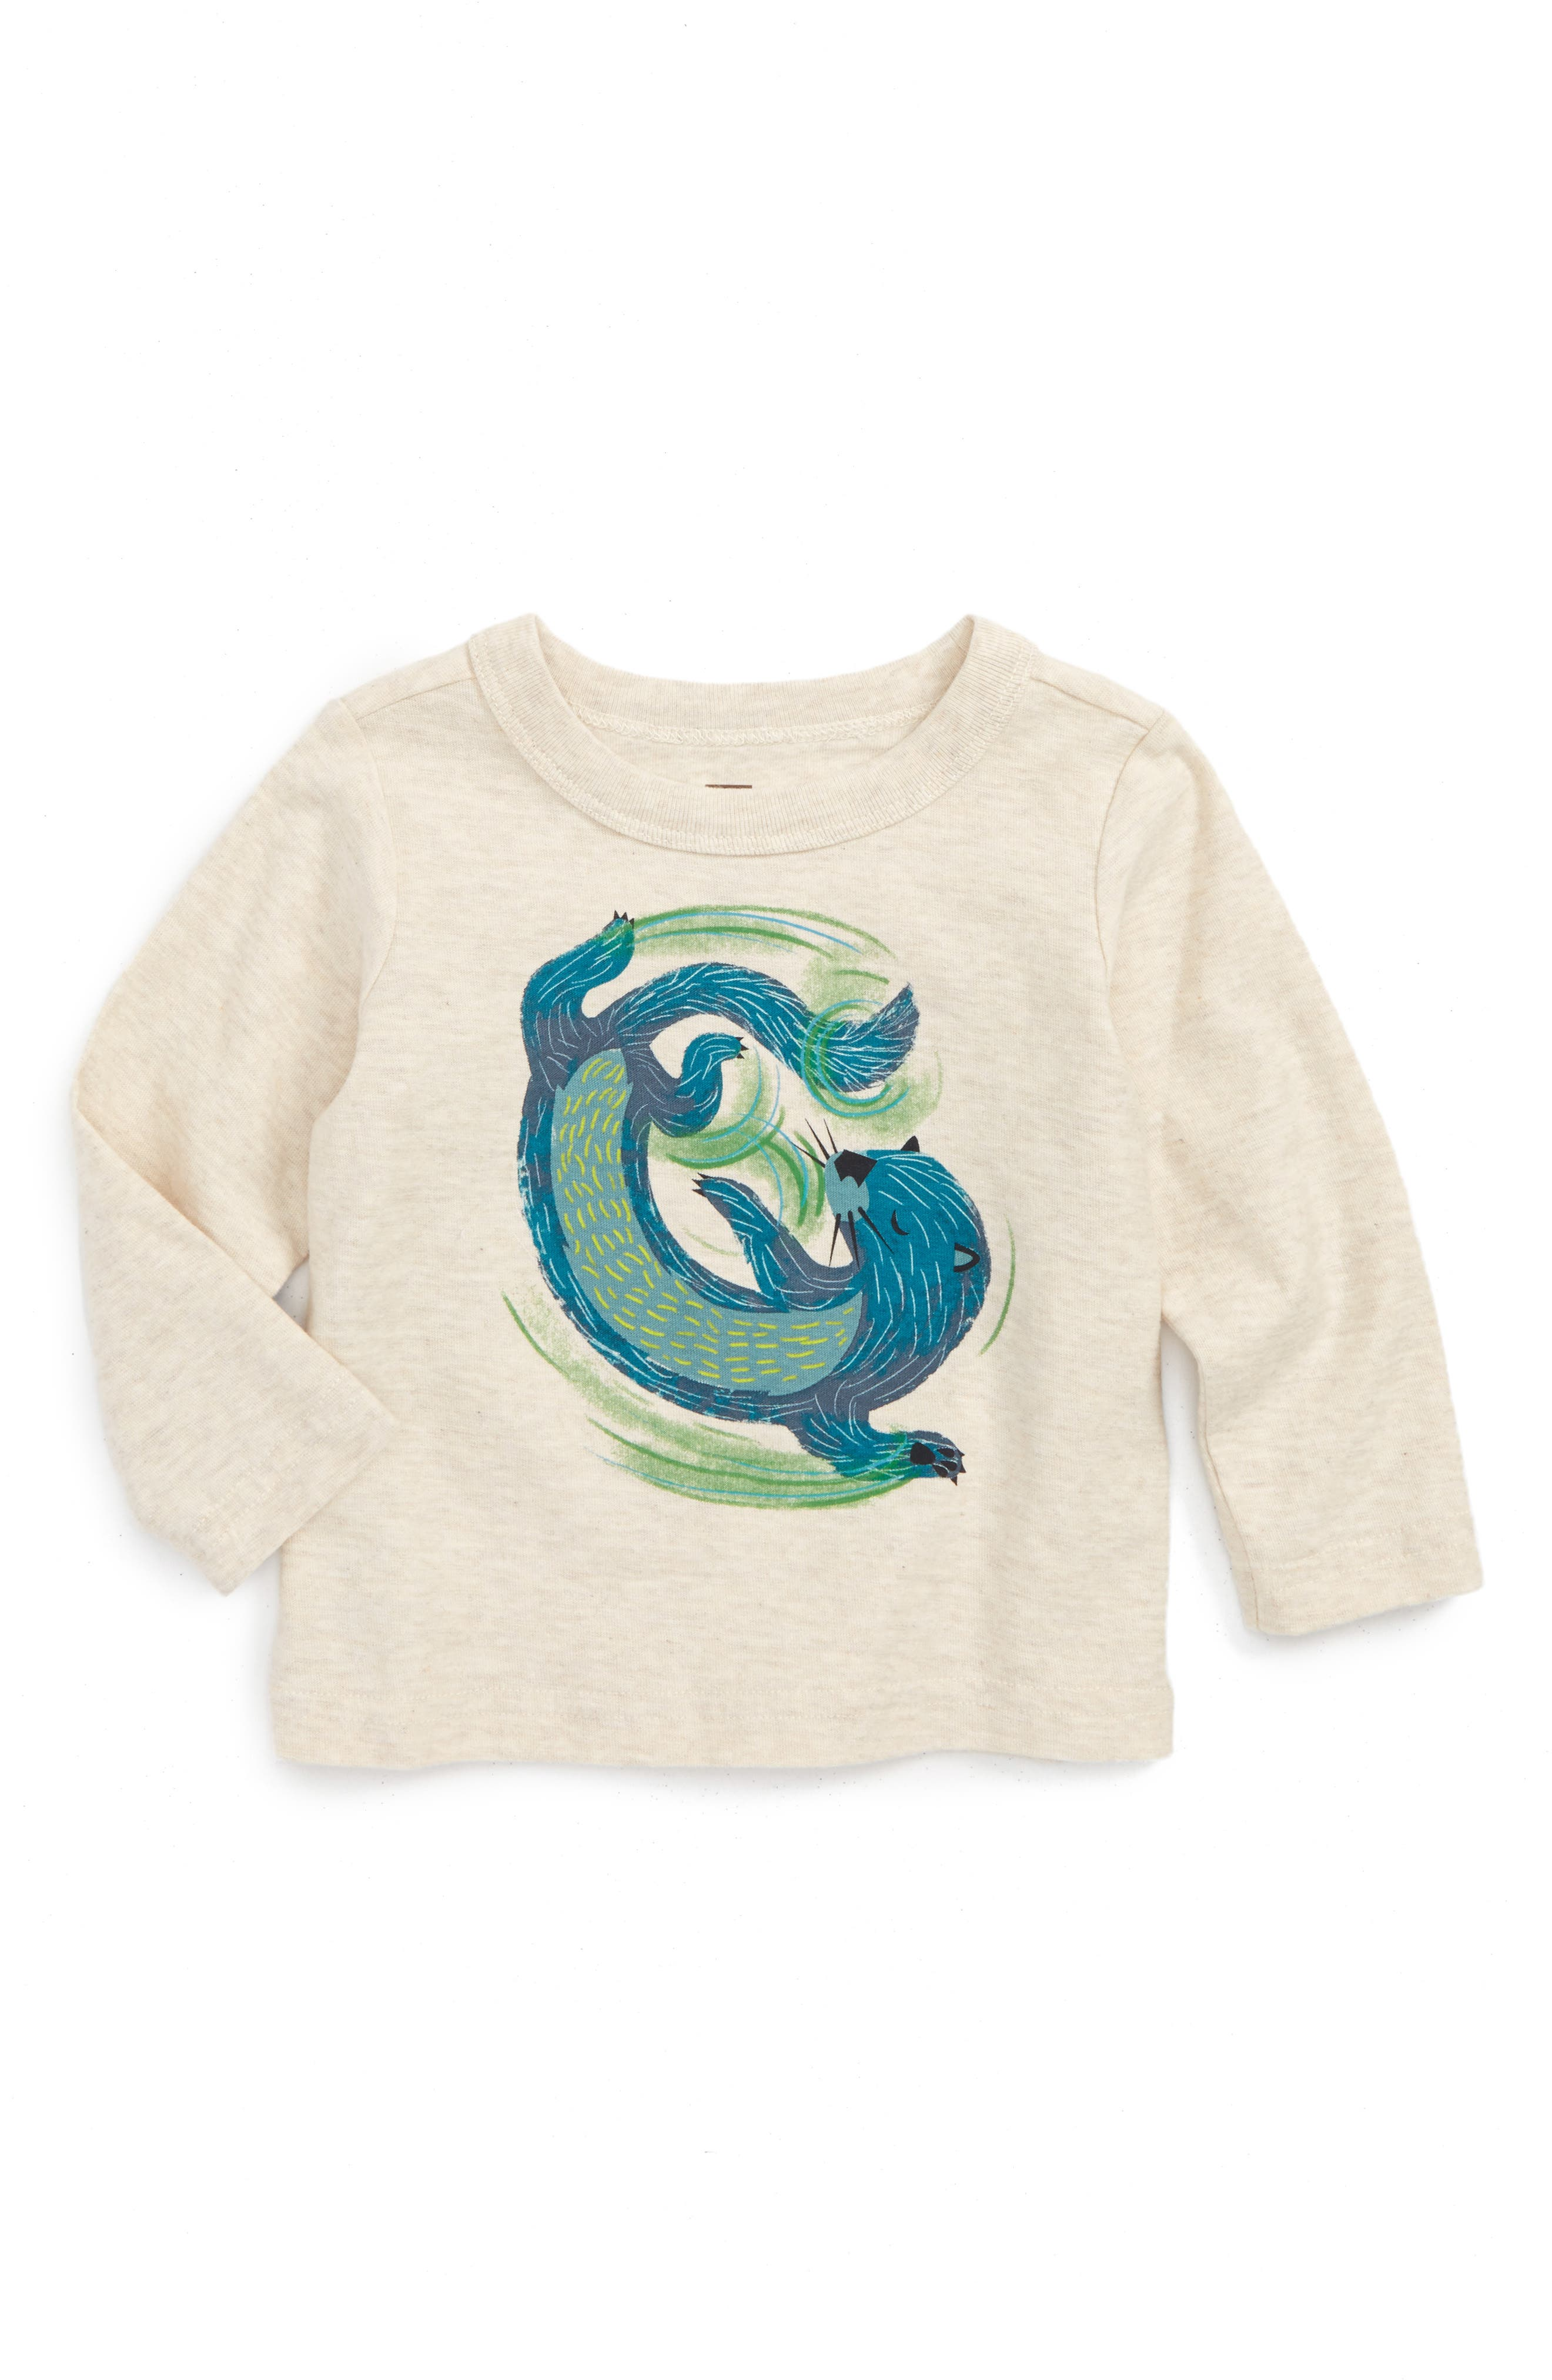 River Otter Graphic T-Shirt,                         Main,                         color, 280